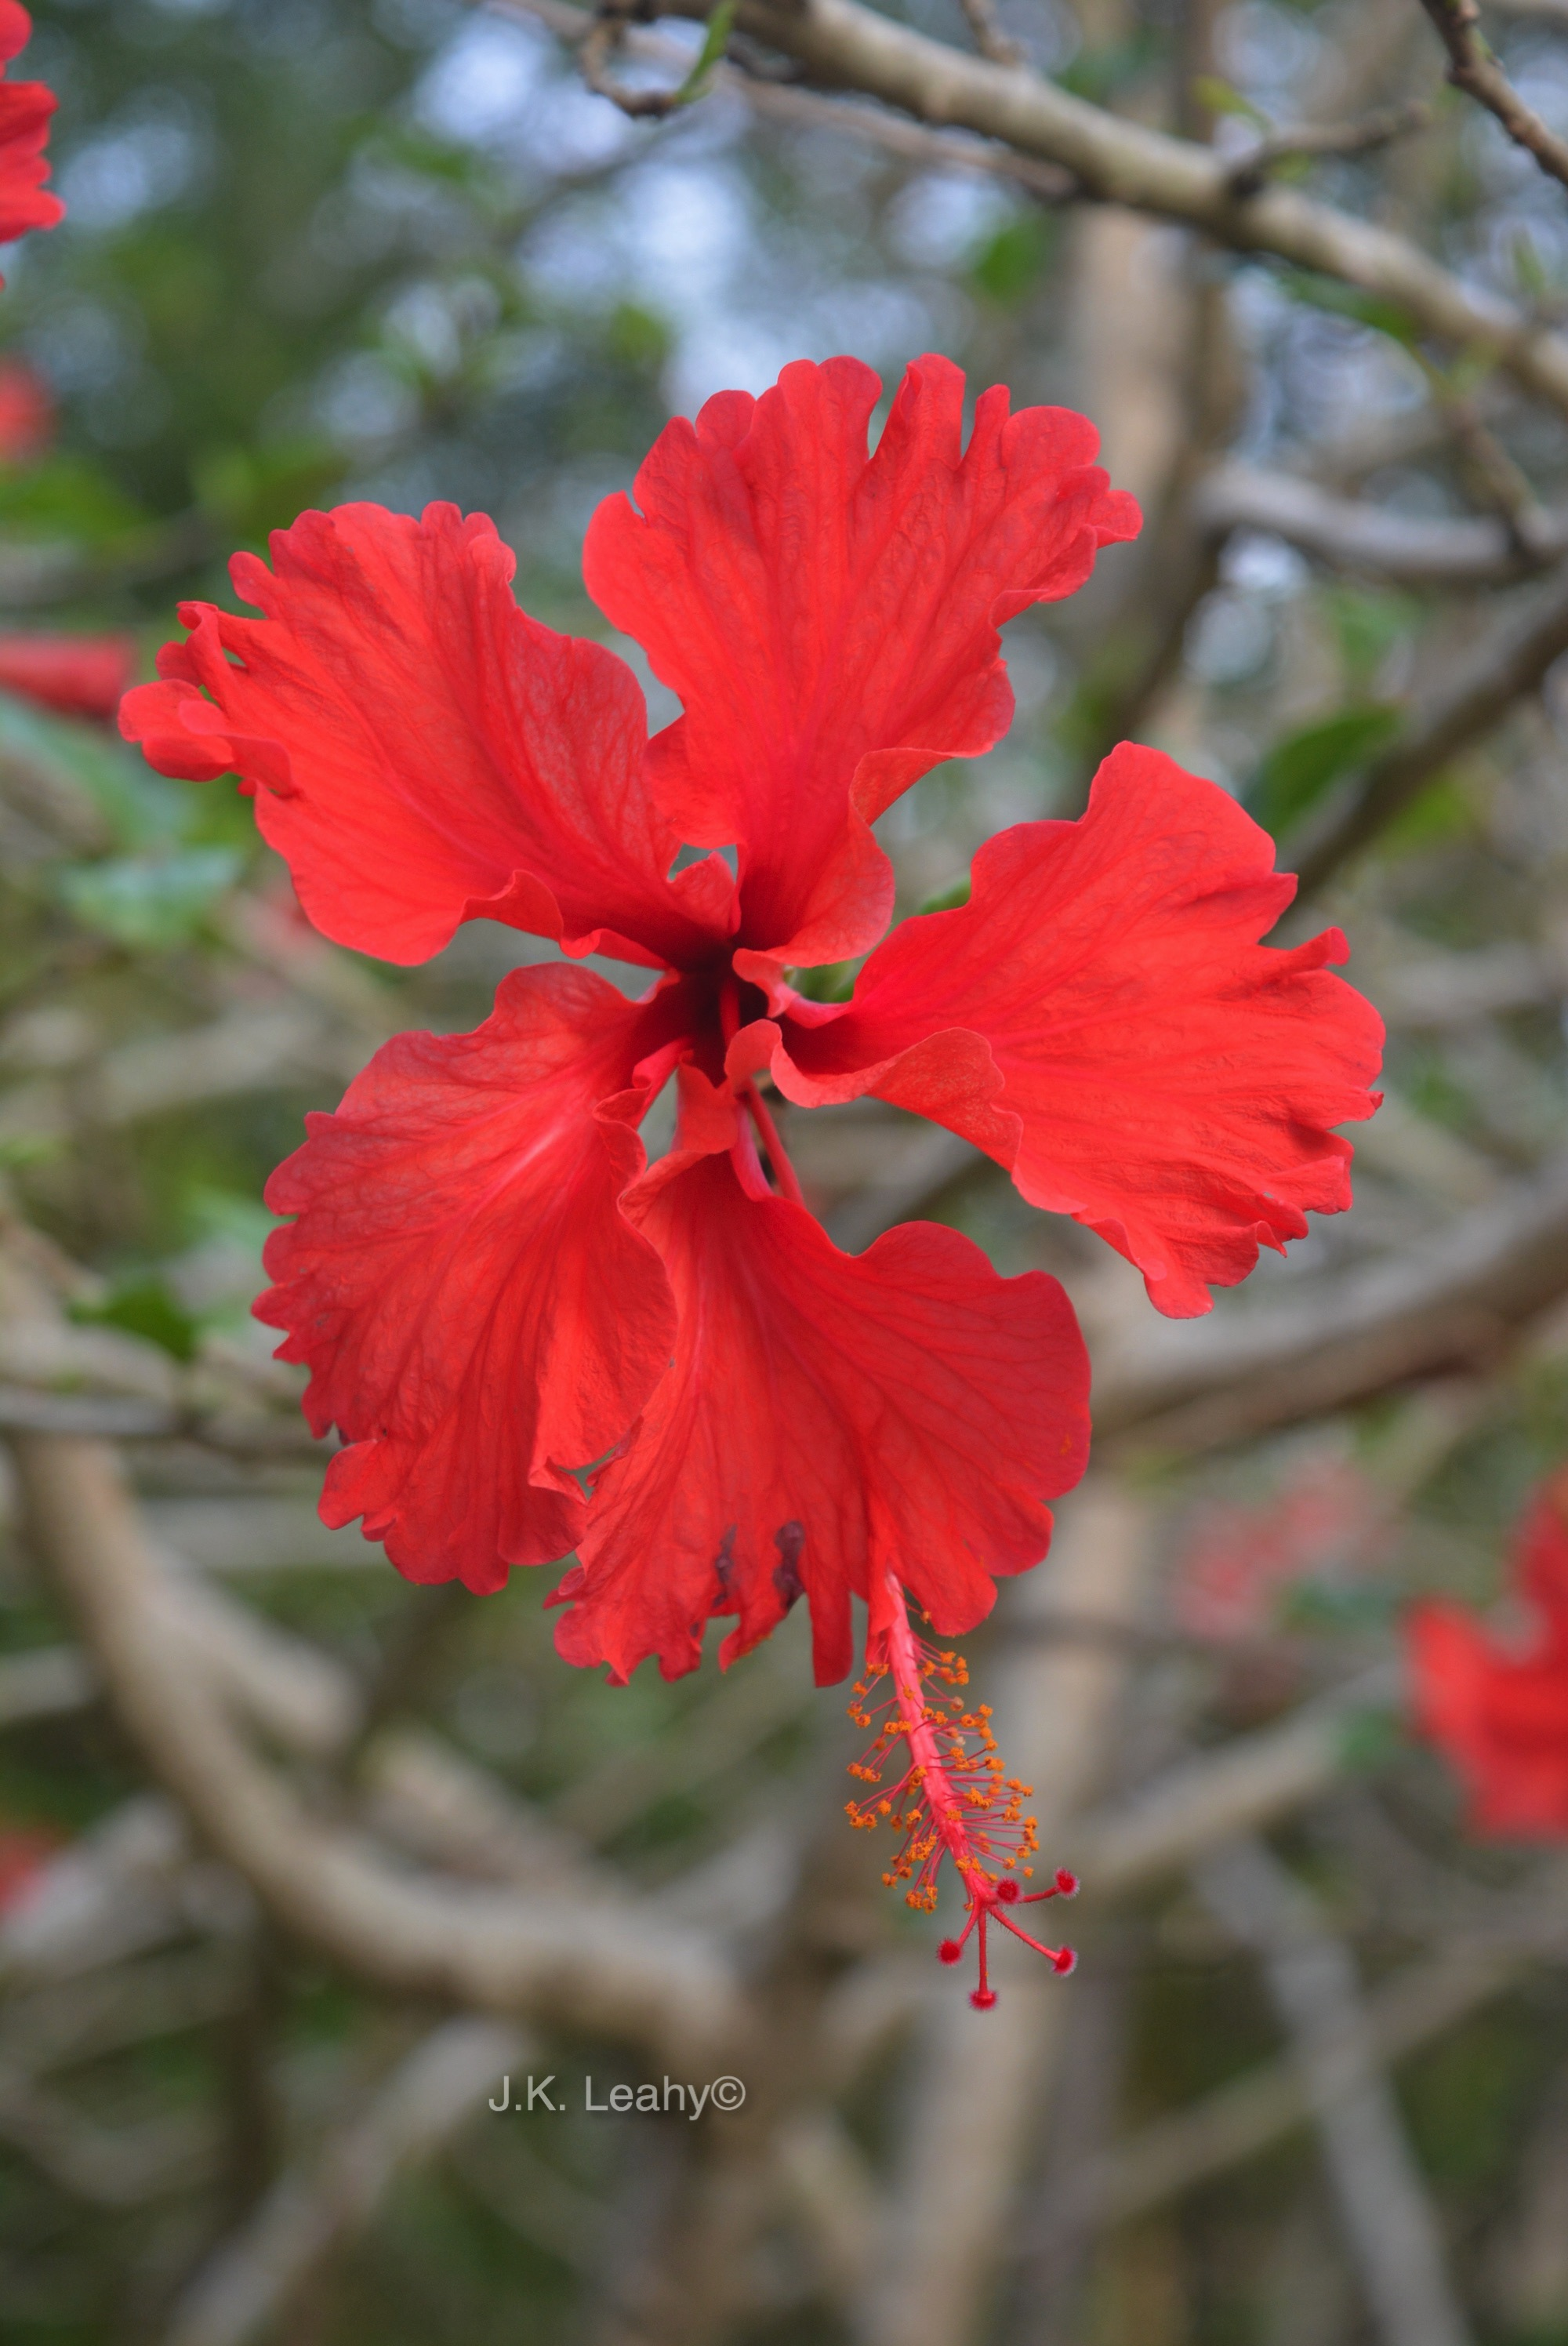 Hibiscus flowers tribalmystic stories the flower is slightly acidic and is made into tangy sweet jelly rosella jam is made from a type of hibiscus here is a recipe i found on food izmirmasajfo